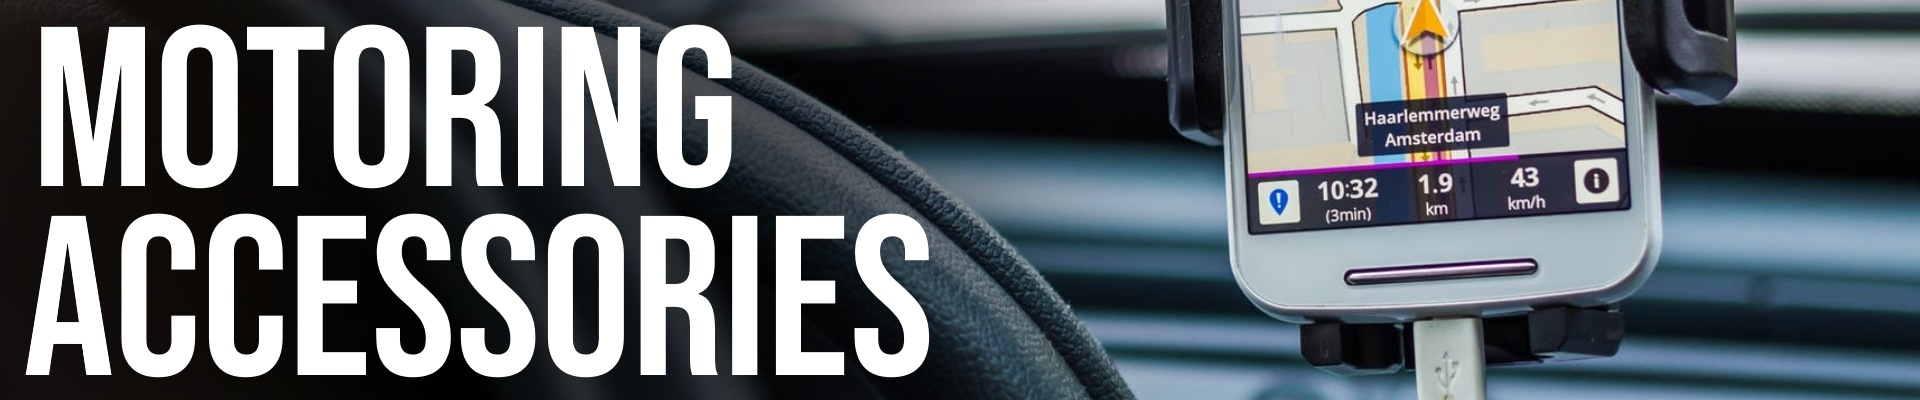 Motoring Accessories Banner